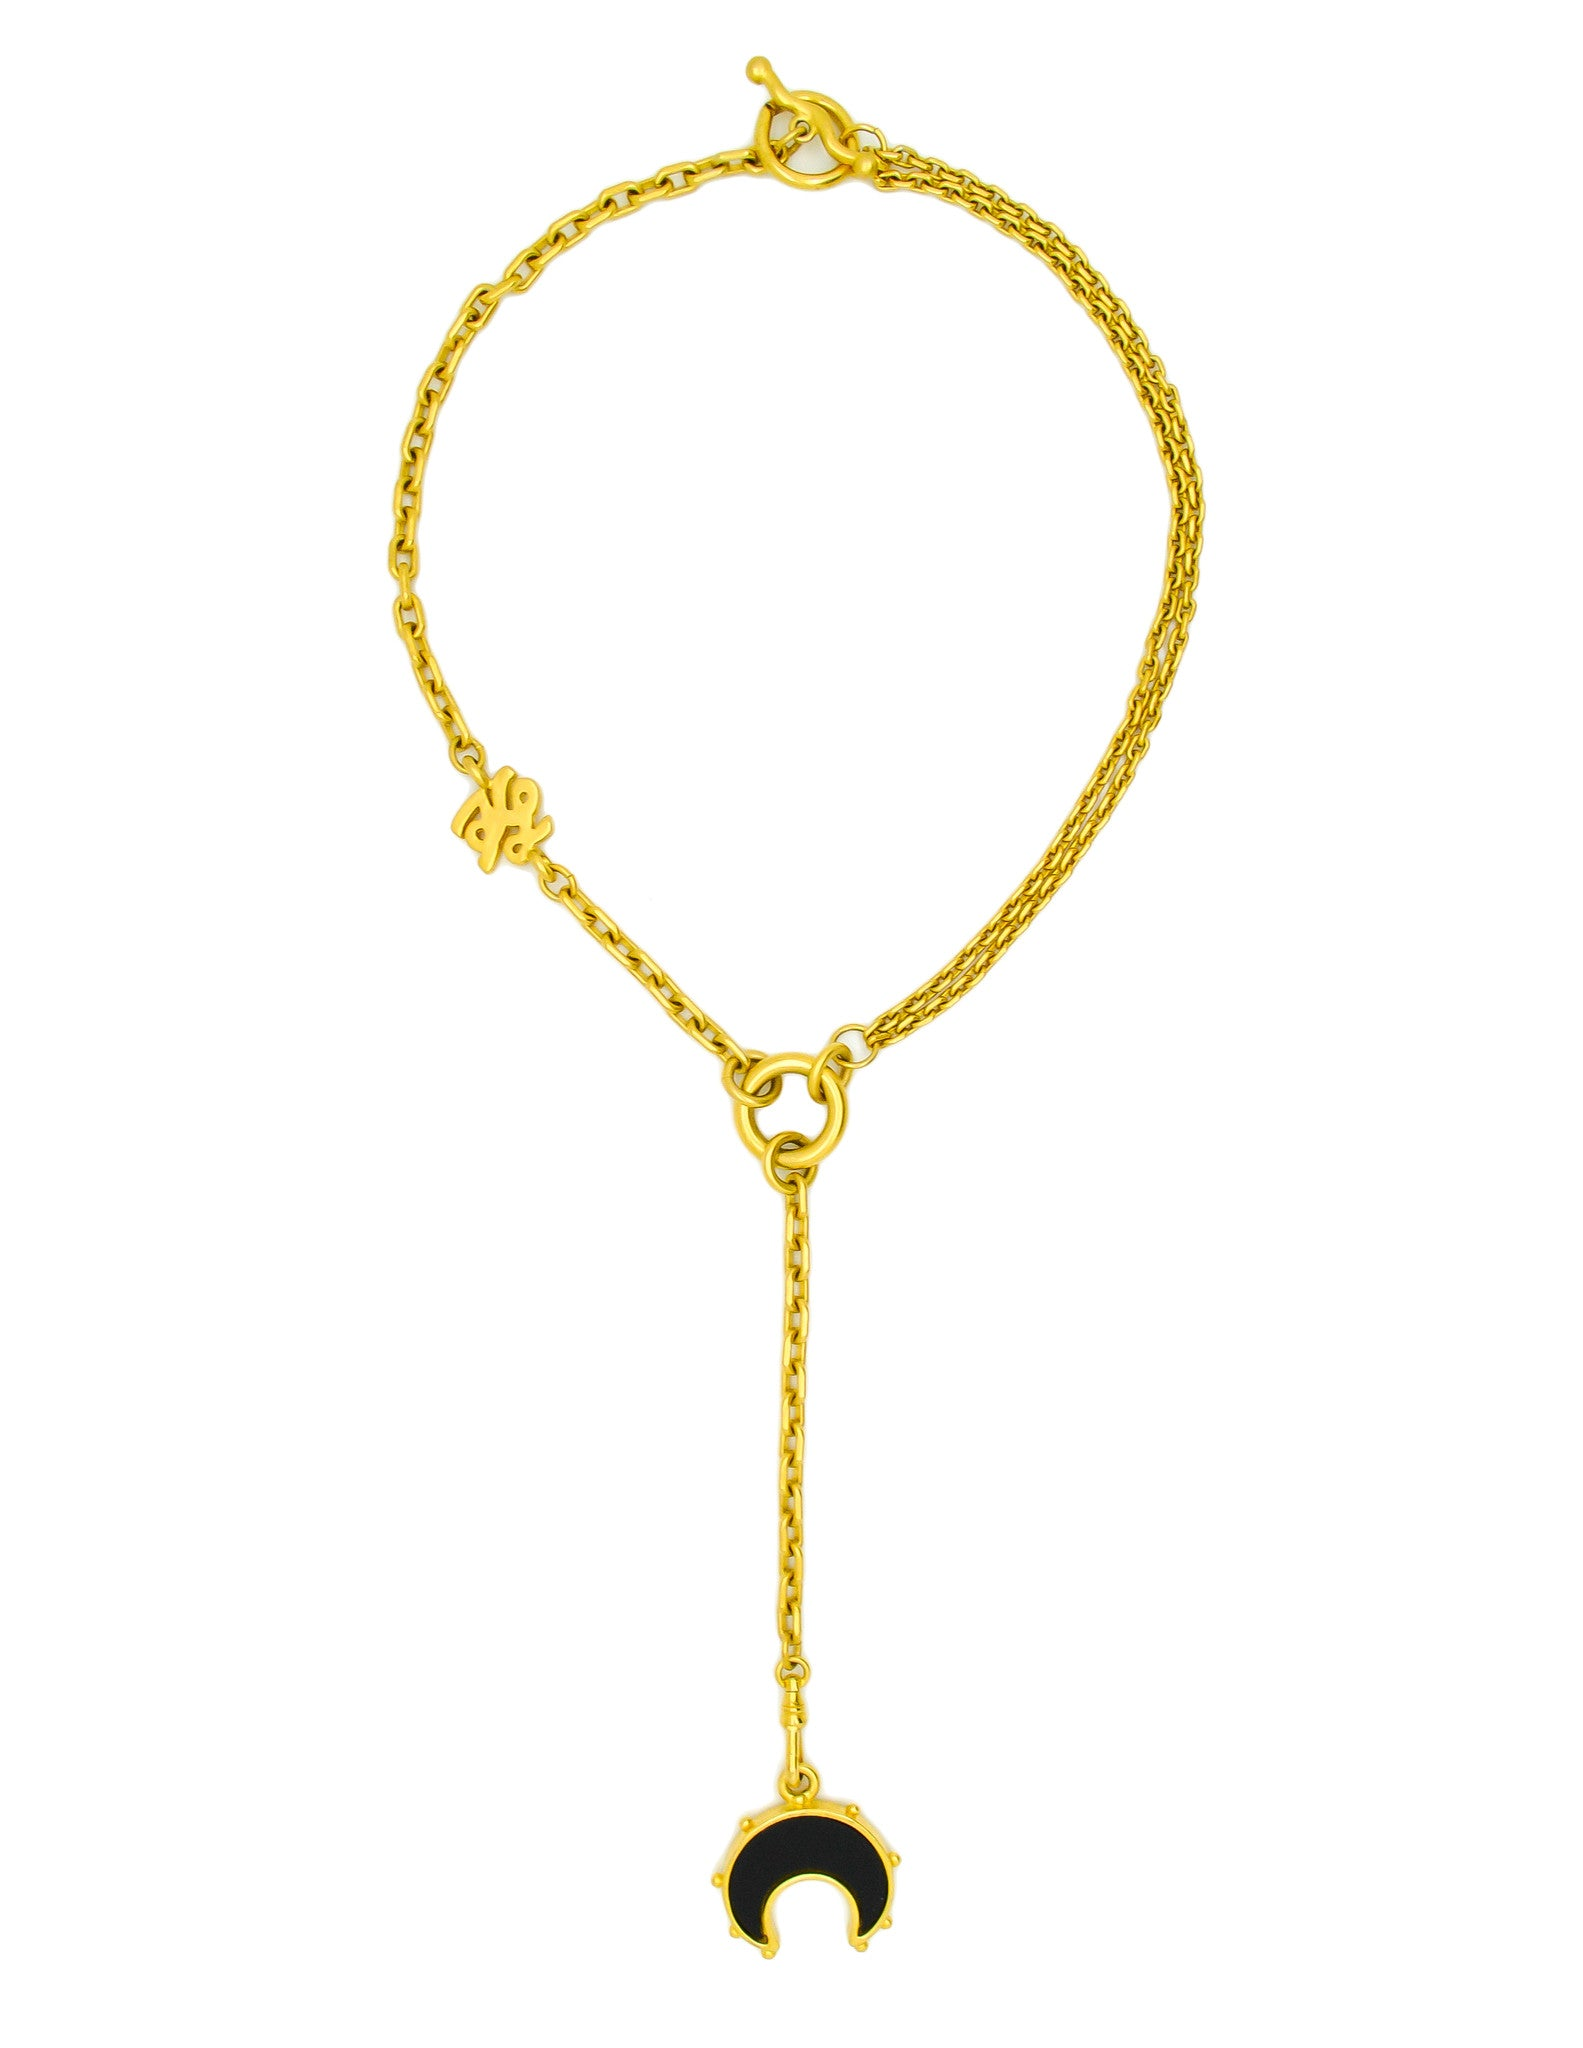 Karl Lagerfeld Vintage Crescent Moon Gold Lariat Necklace - Amarcord Vintage Fashion  - 1